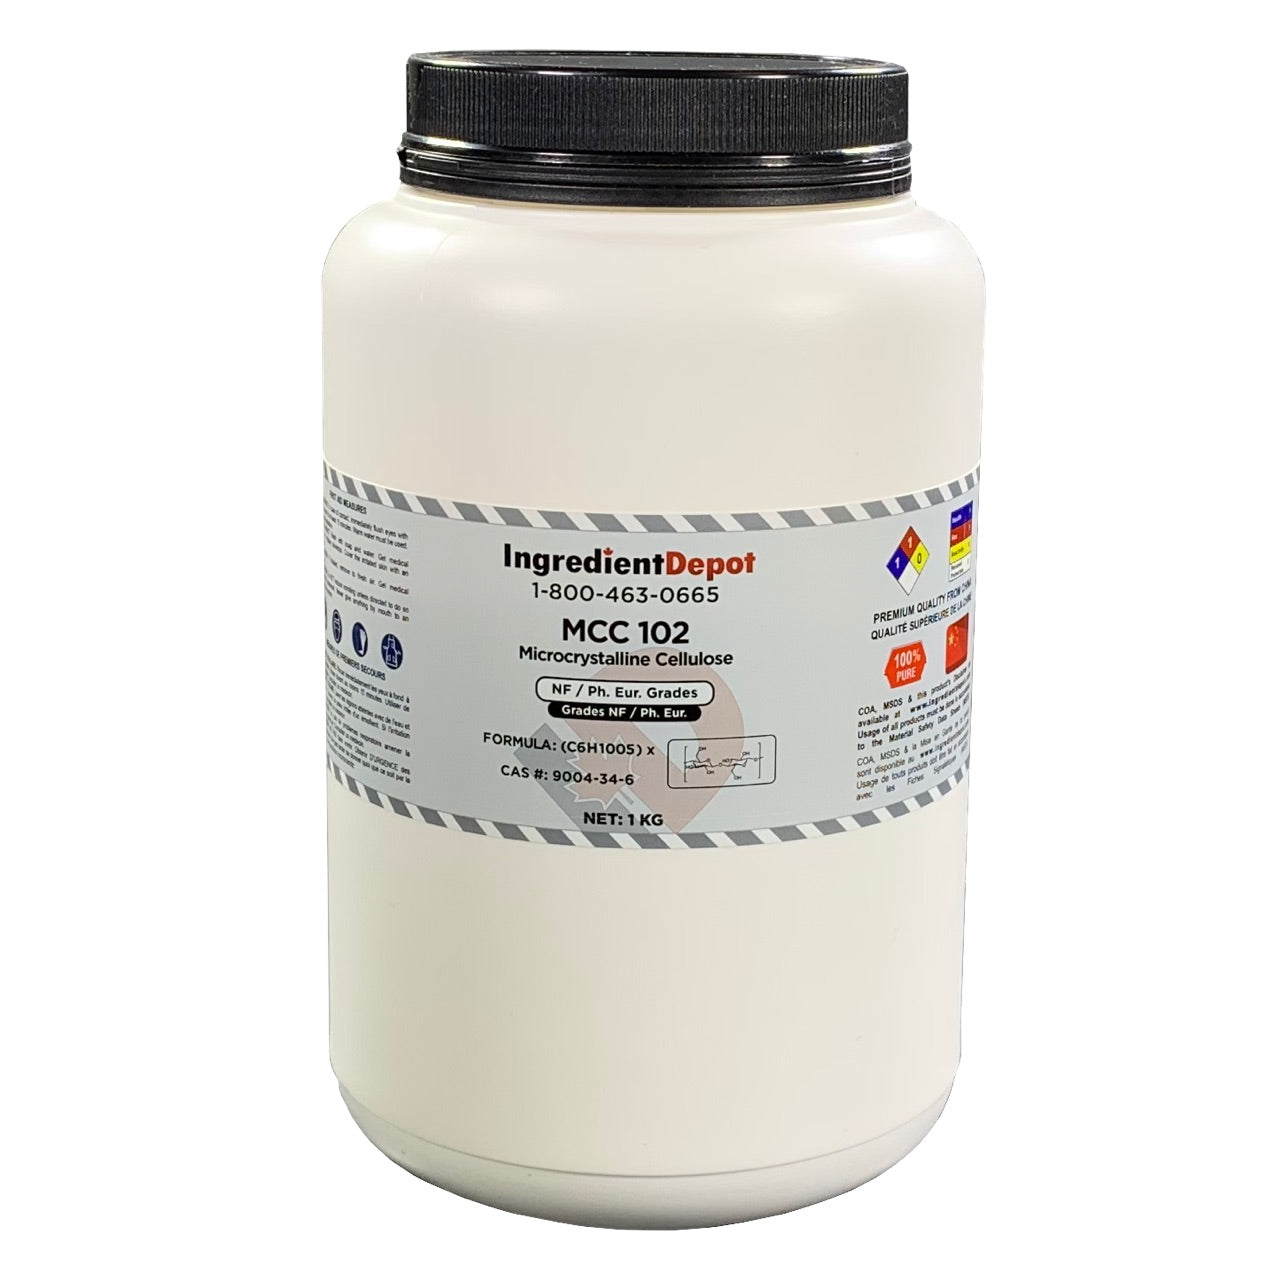 MCC 102 Microcrystalline Cellulose | 1 kg Jar